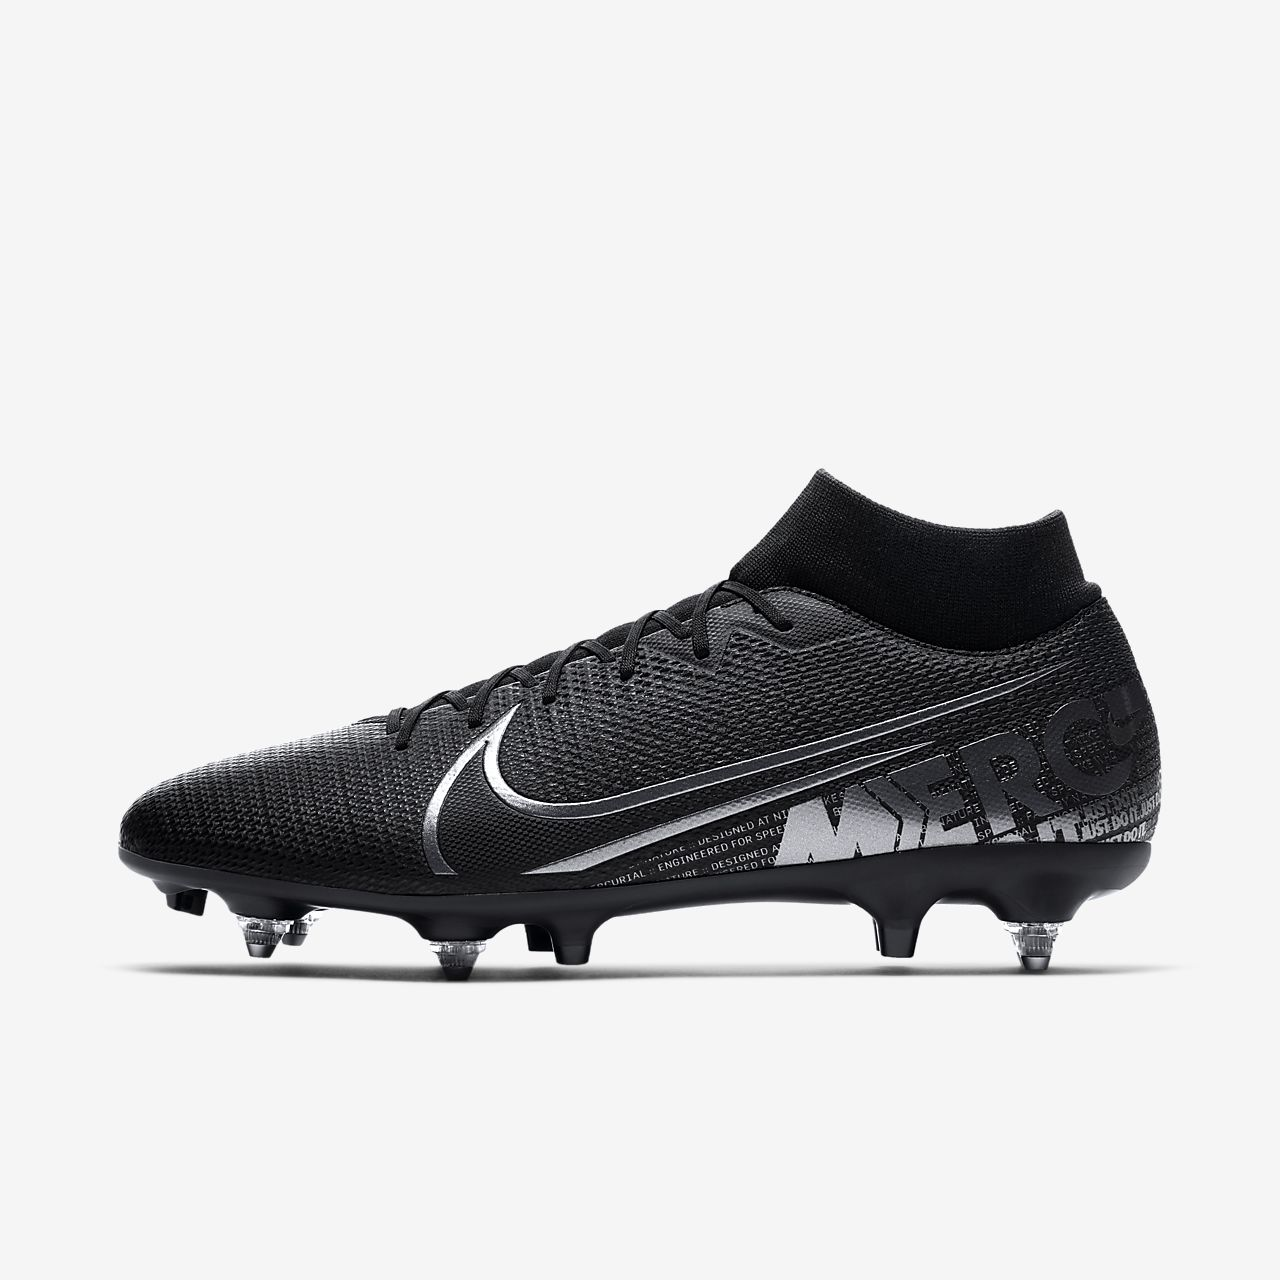 Scarpa da calcio per terreni morbidi Nike Mercurial Superfly 7 Academy SG-PRO Anti-Clog Traction